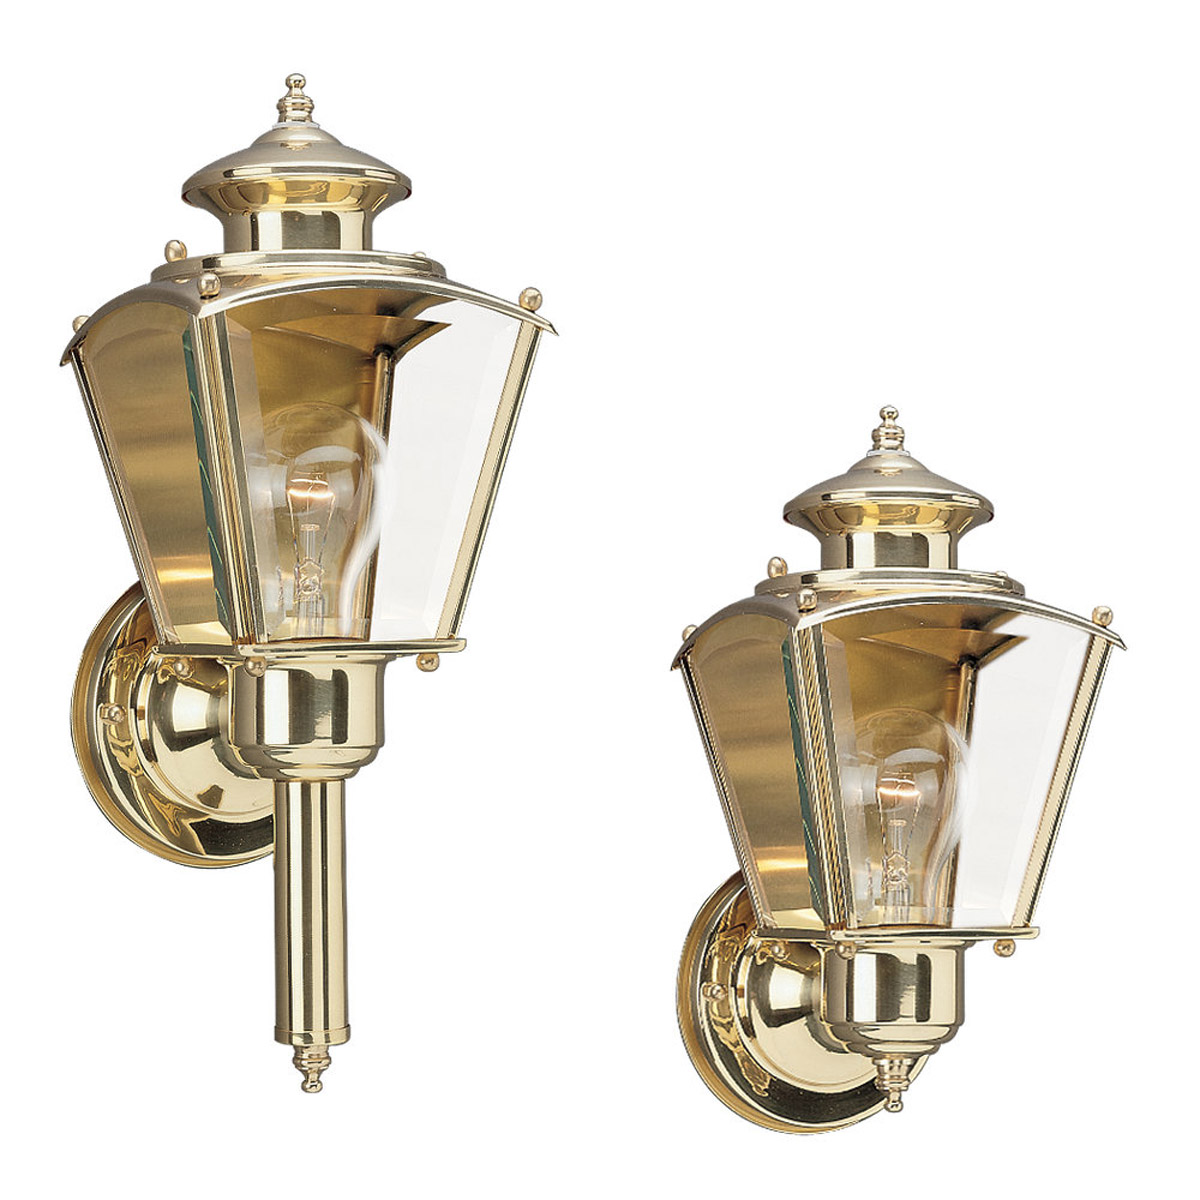 Sea Gull Lighting New Castle 1 Light Outdoor Wall Lantern in Polished Brass 8503-02